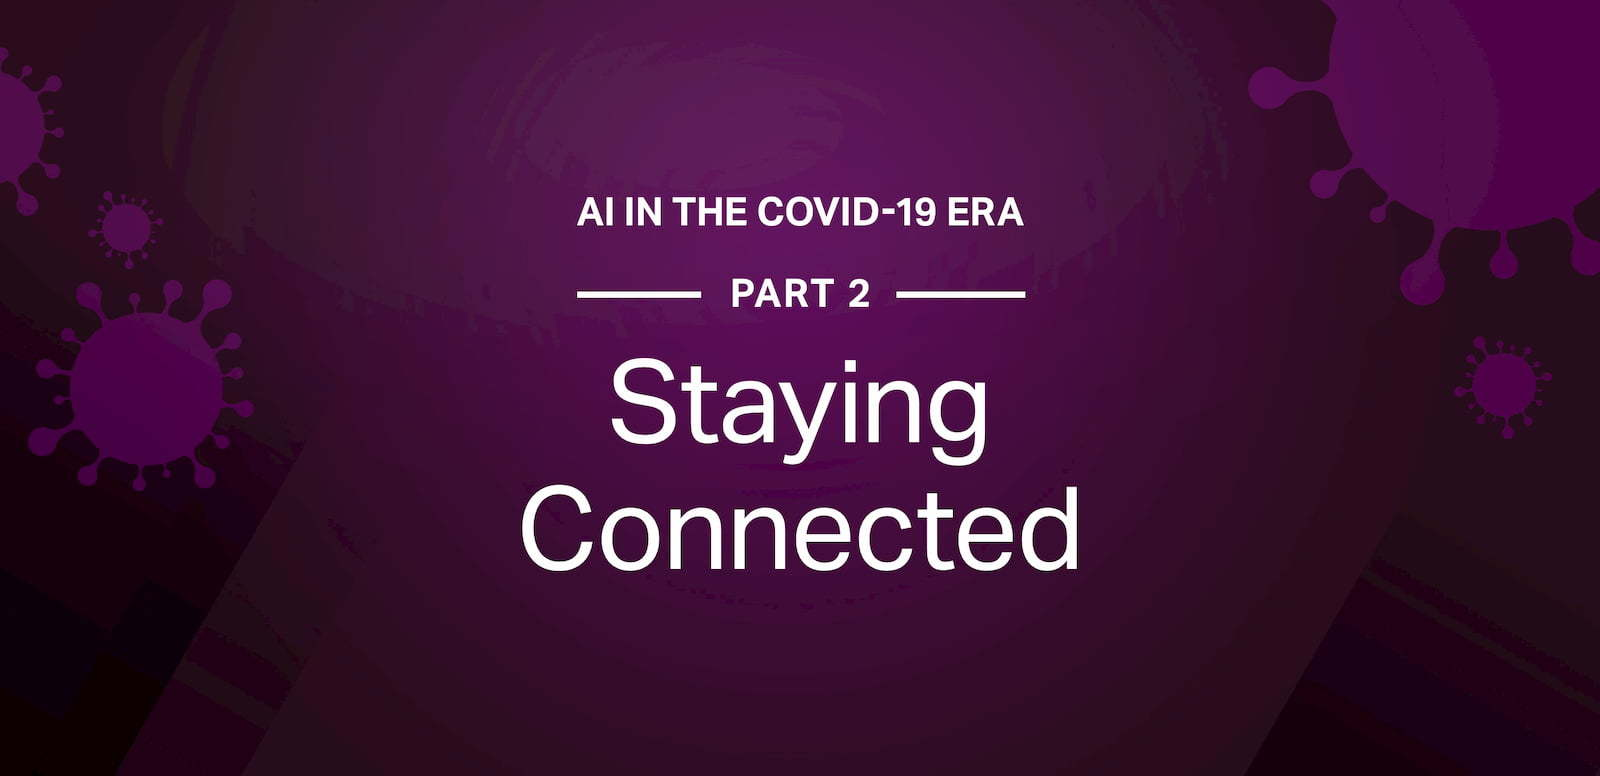 AI in the COVID-19 era pt. 2: Staying connected with remote access